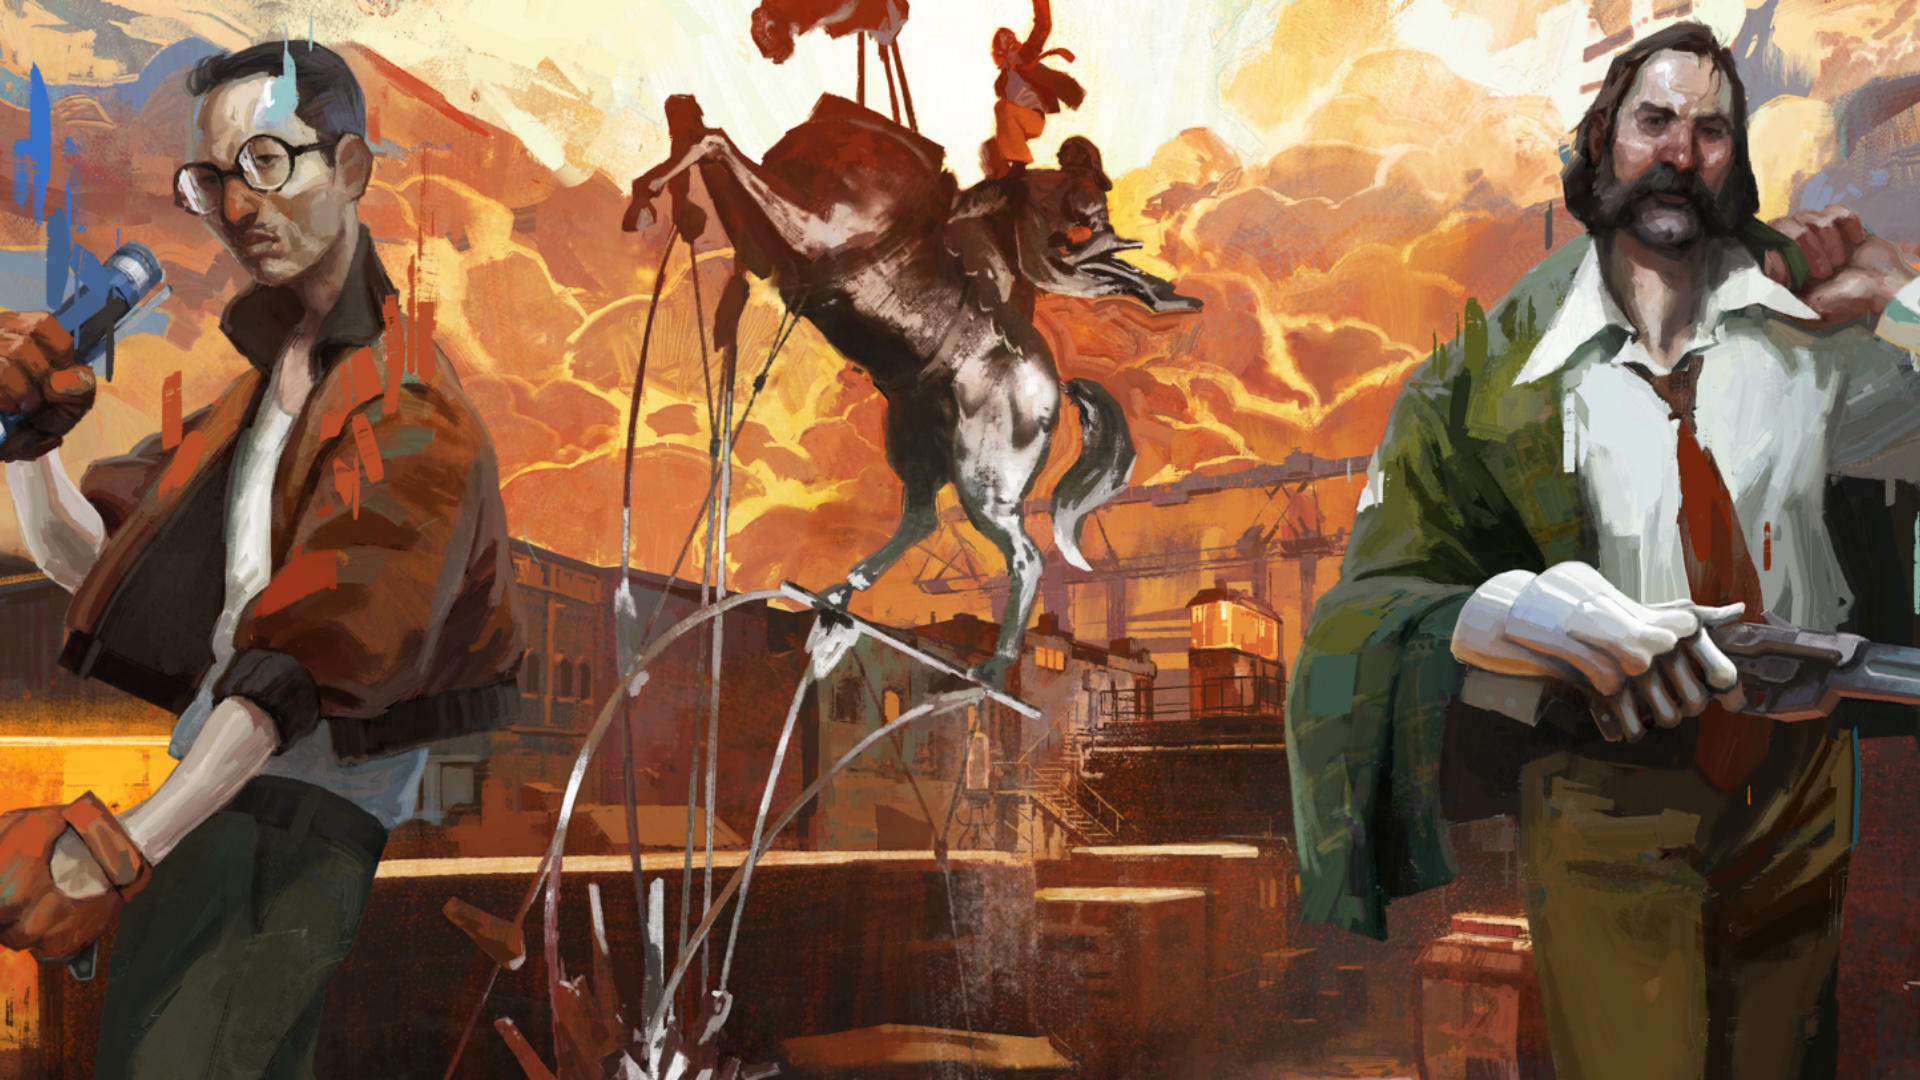 Localizing Disco Elysium for China: what can go wrong? - Game ...